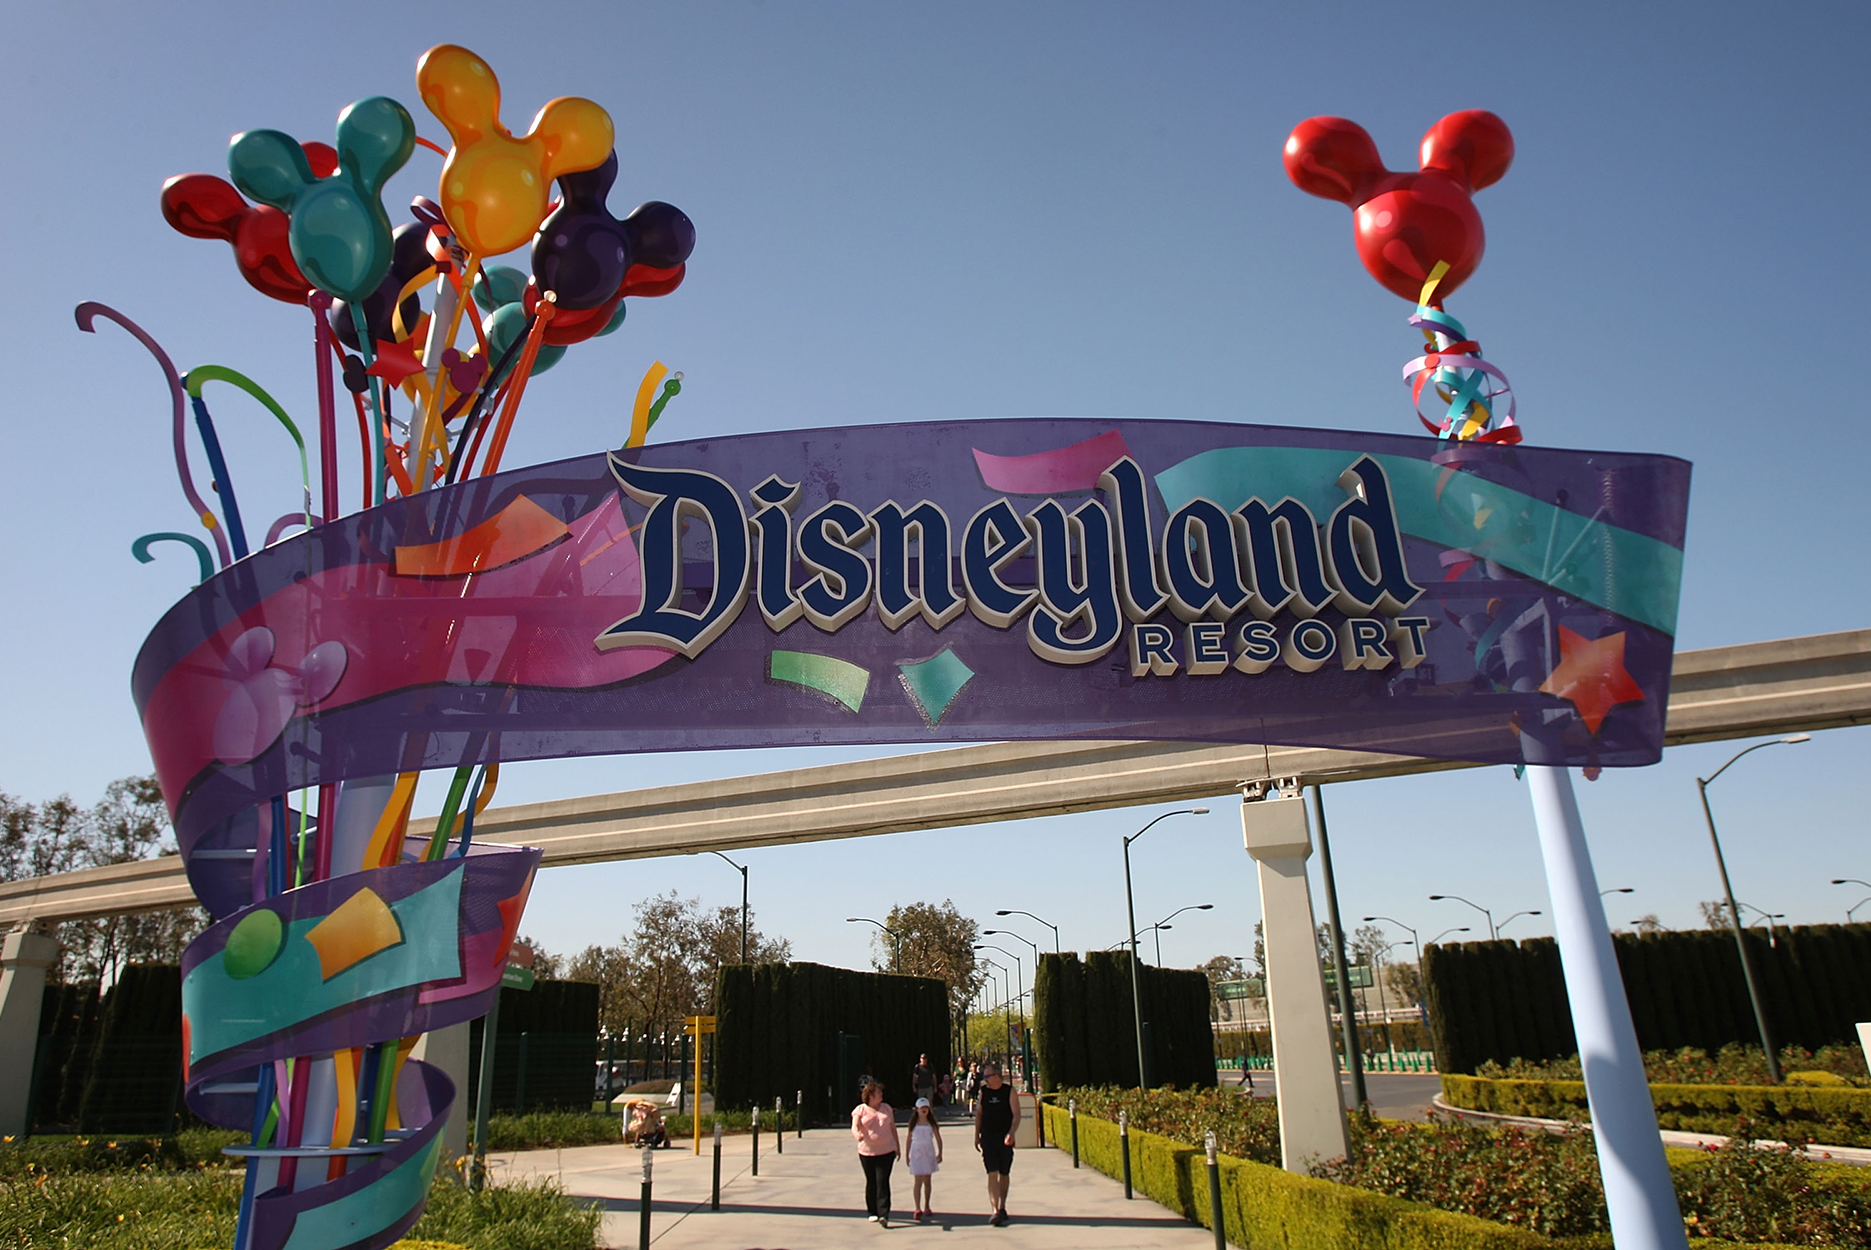 The entrance to the Disneyland Resort in Anaheim, CA.